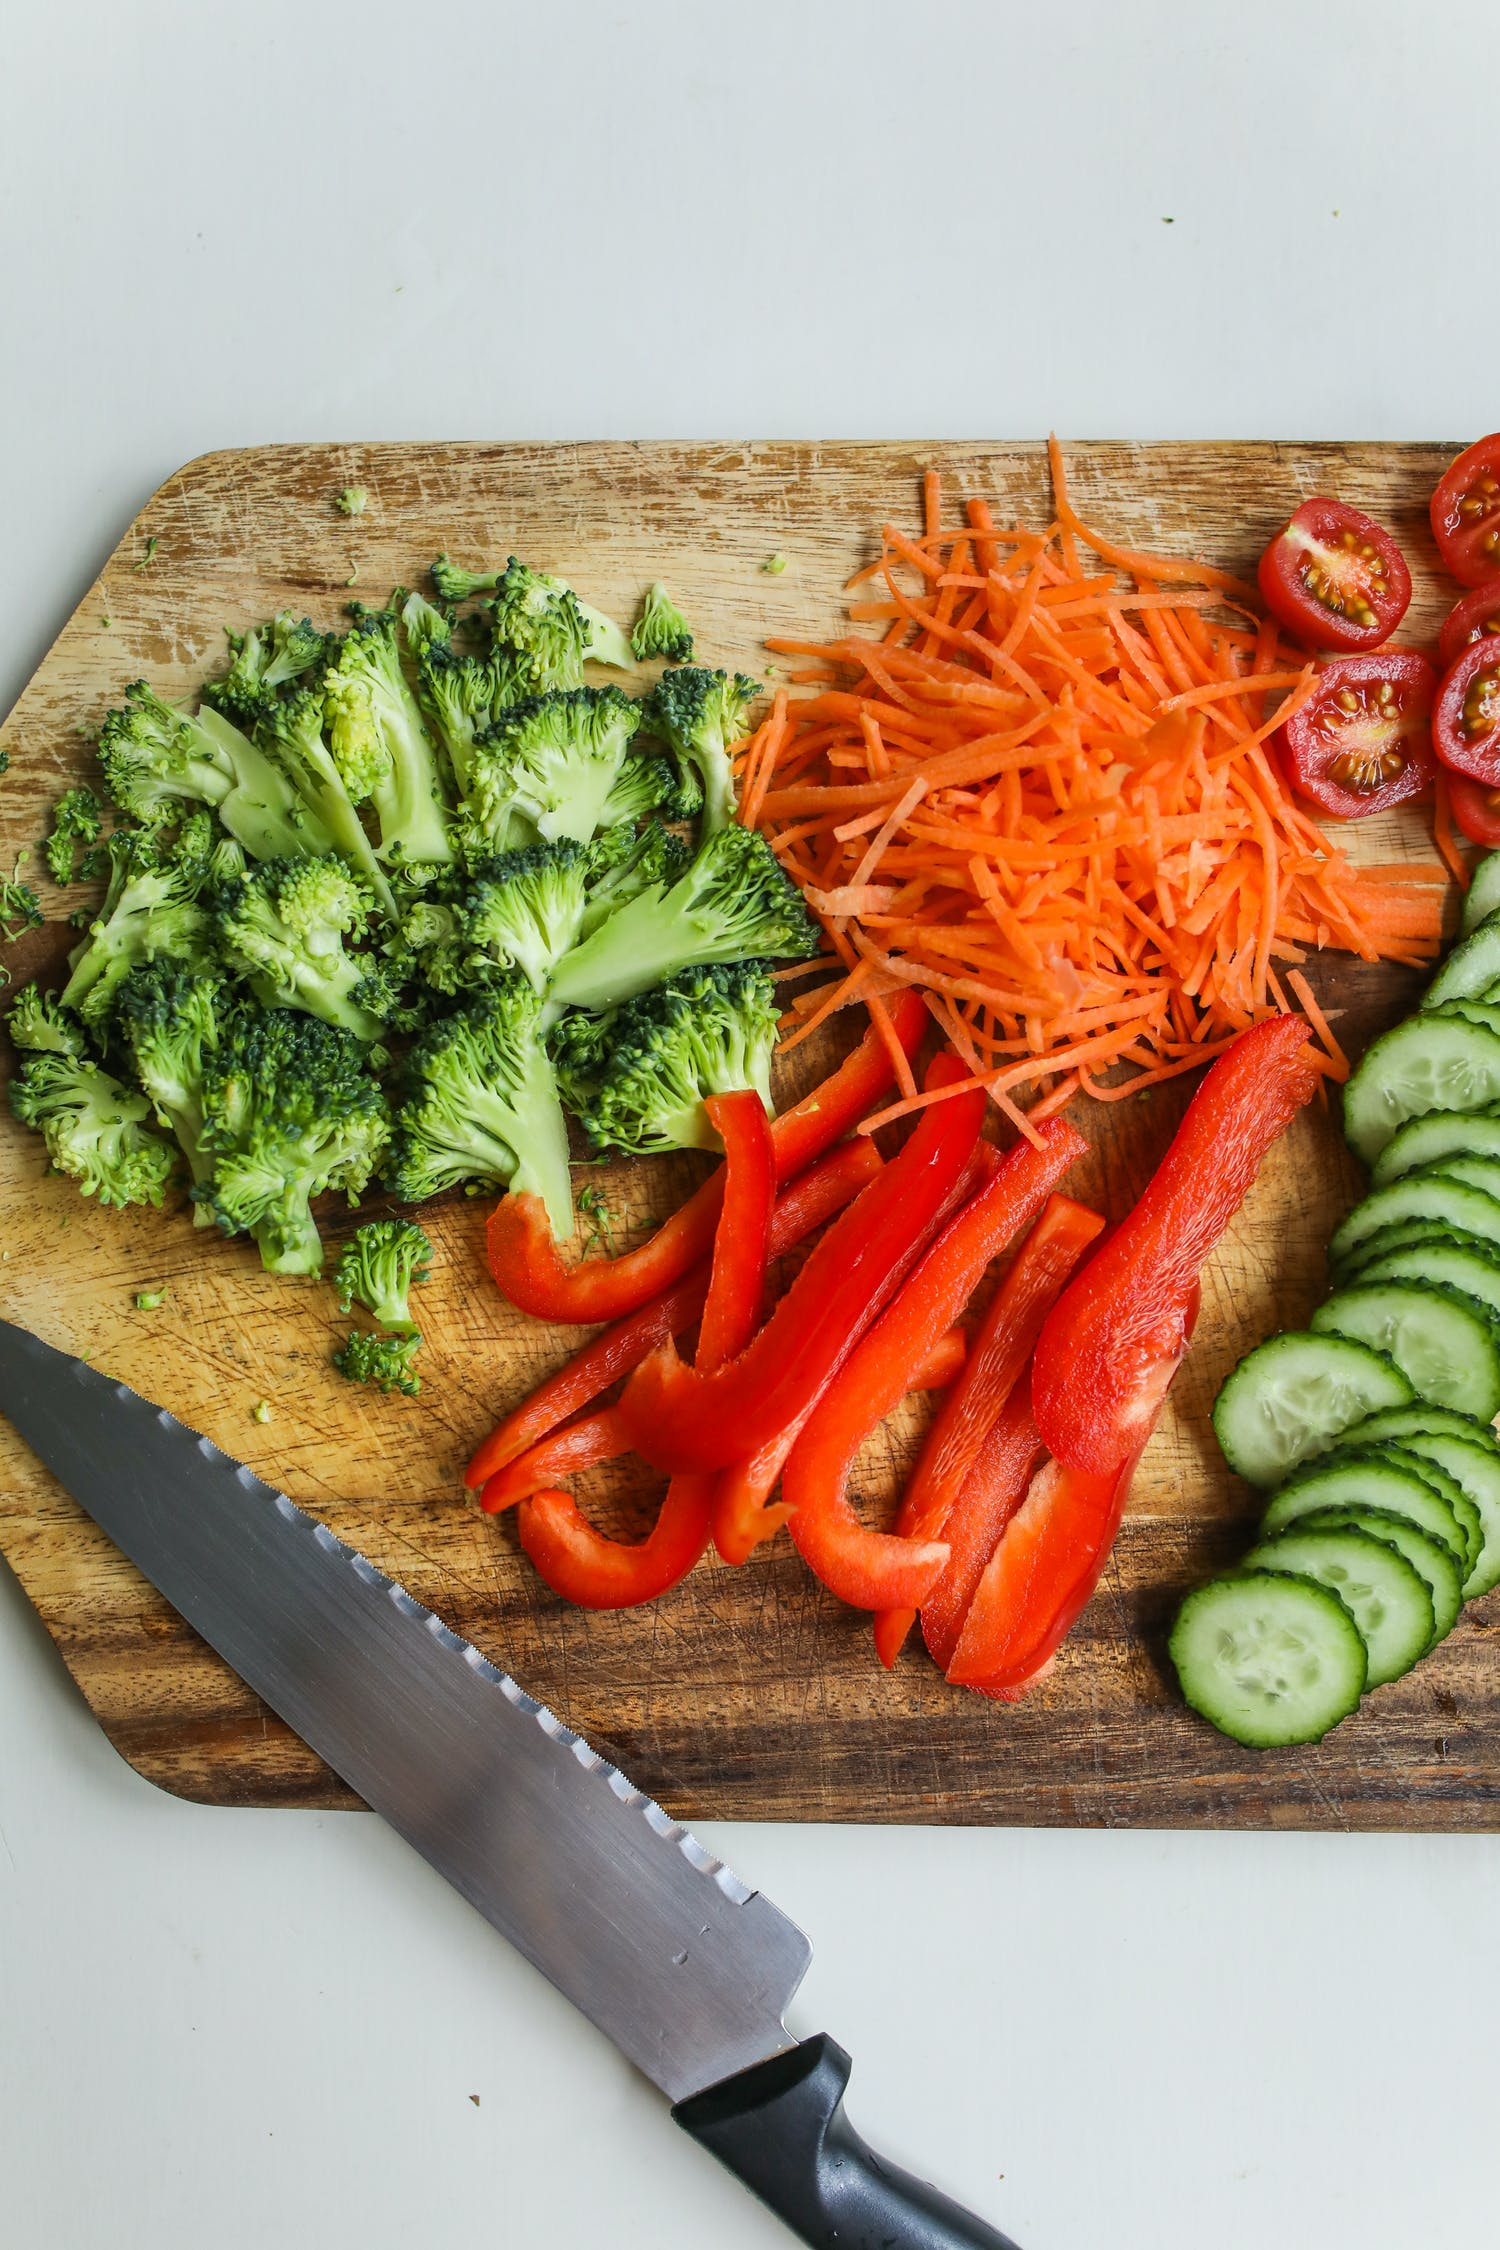 Photo Of Sliced Vegetables On Wooden Chopping Board